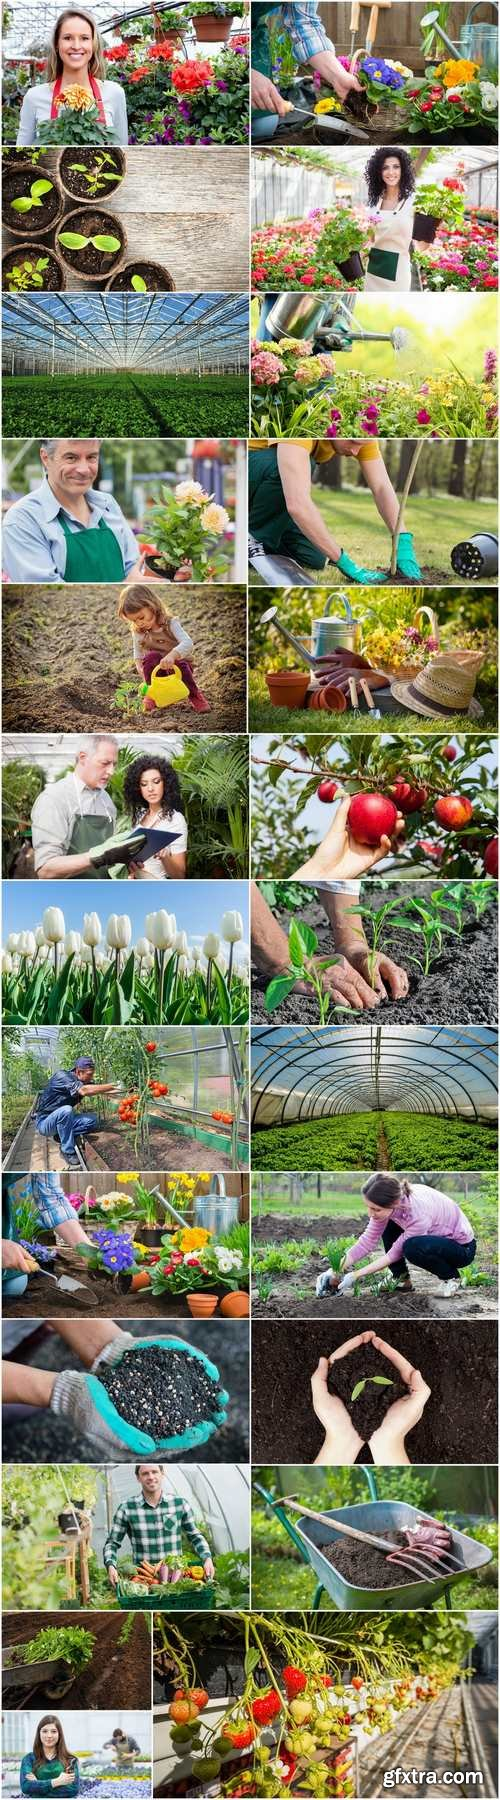 People and gardening 25 HQ Jpeg